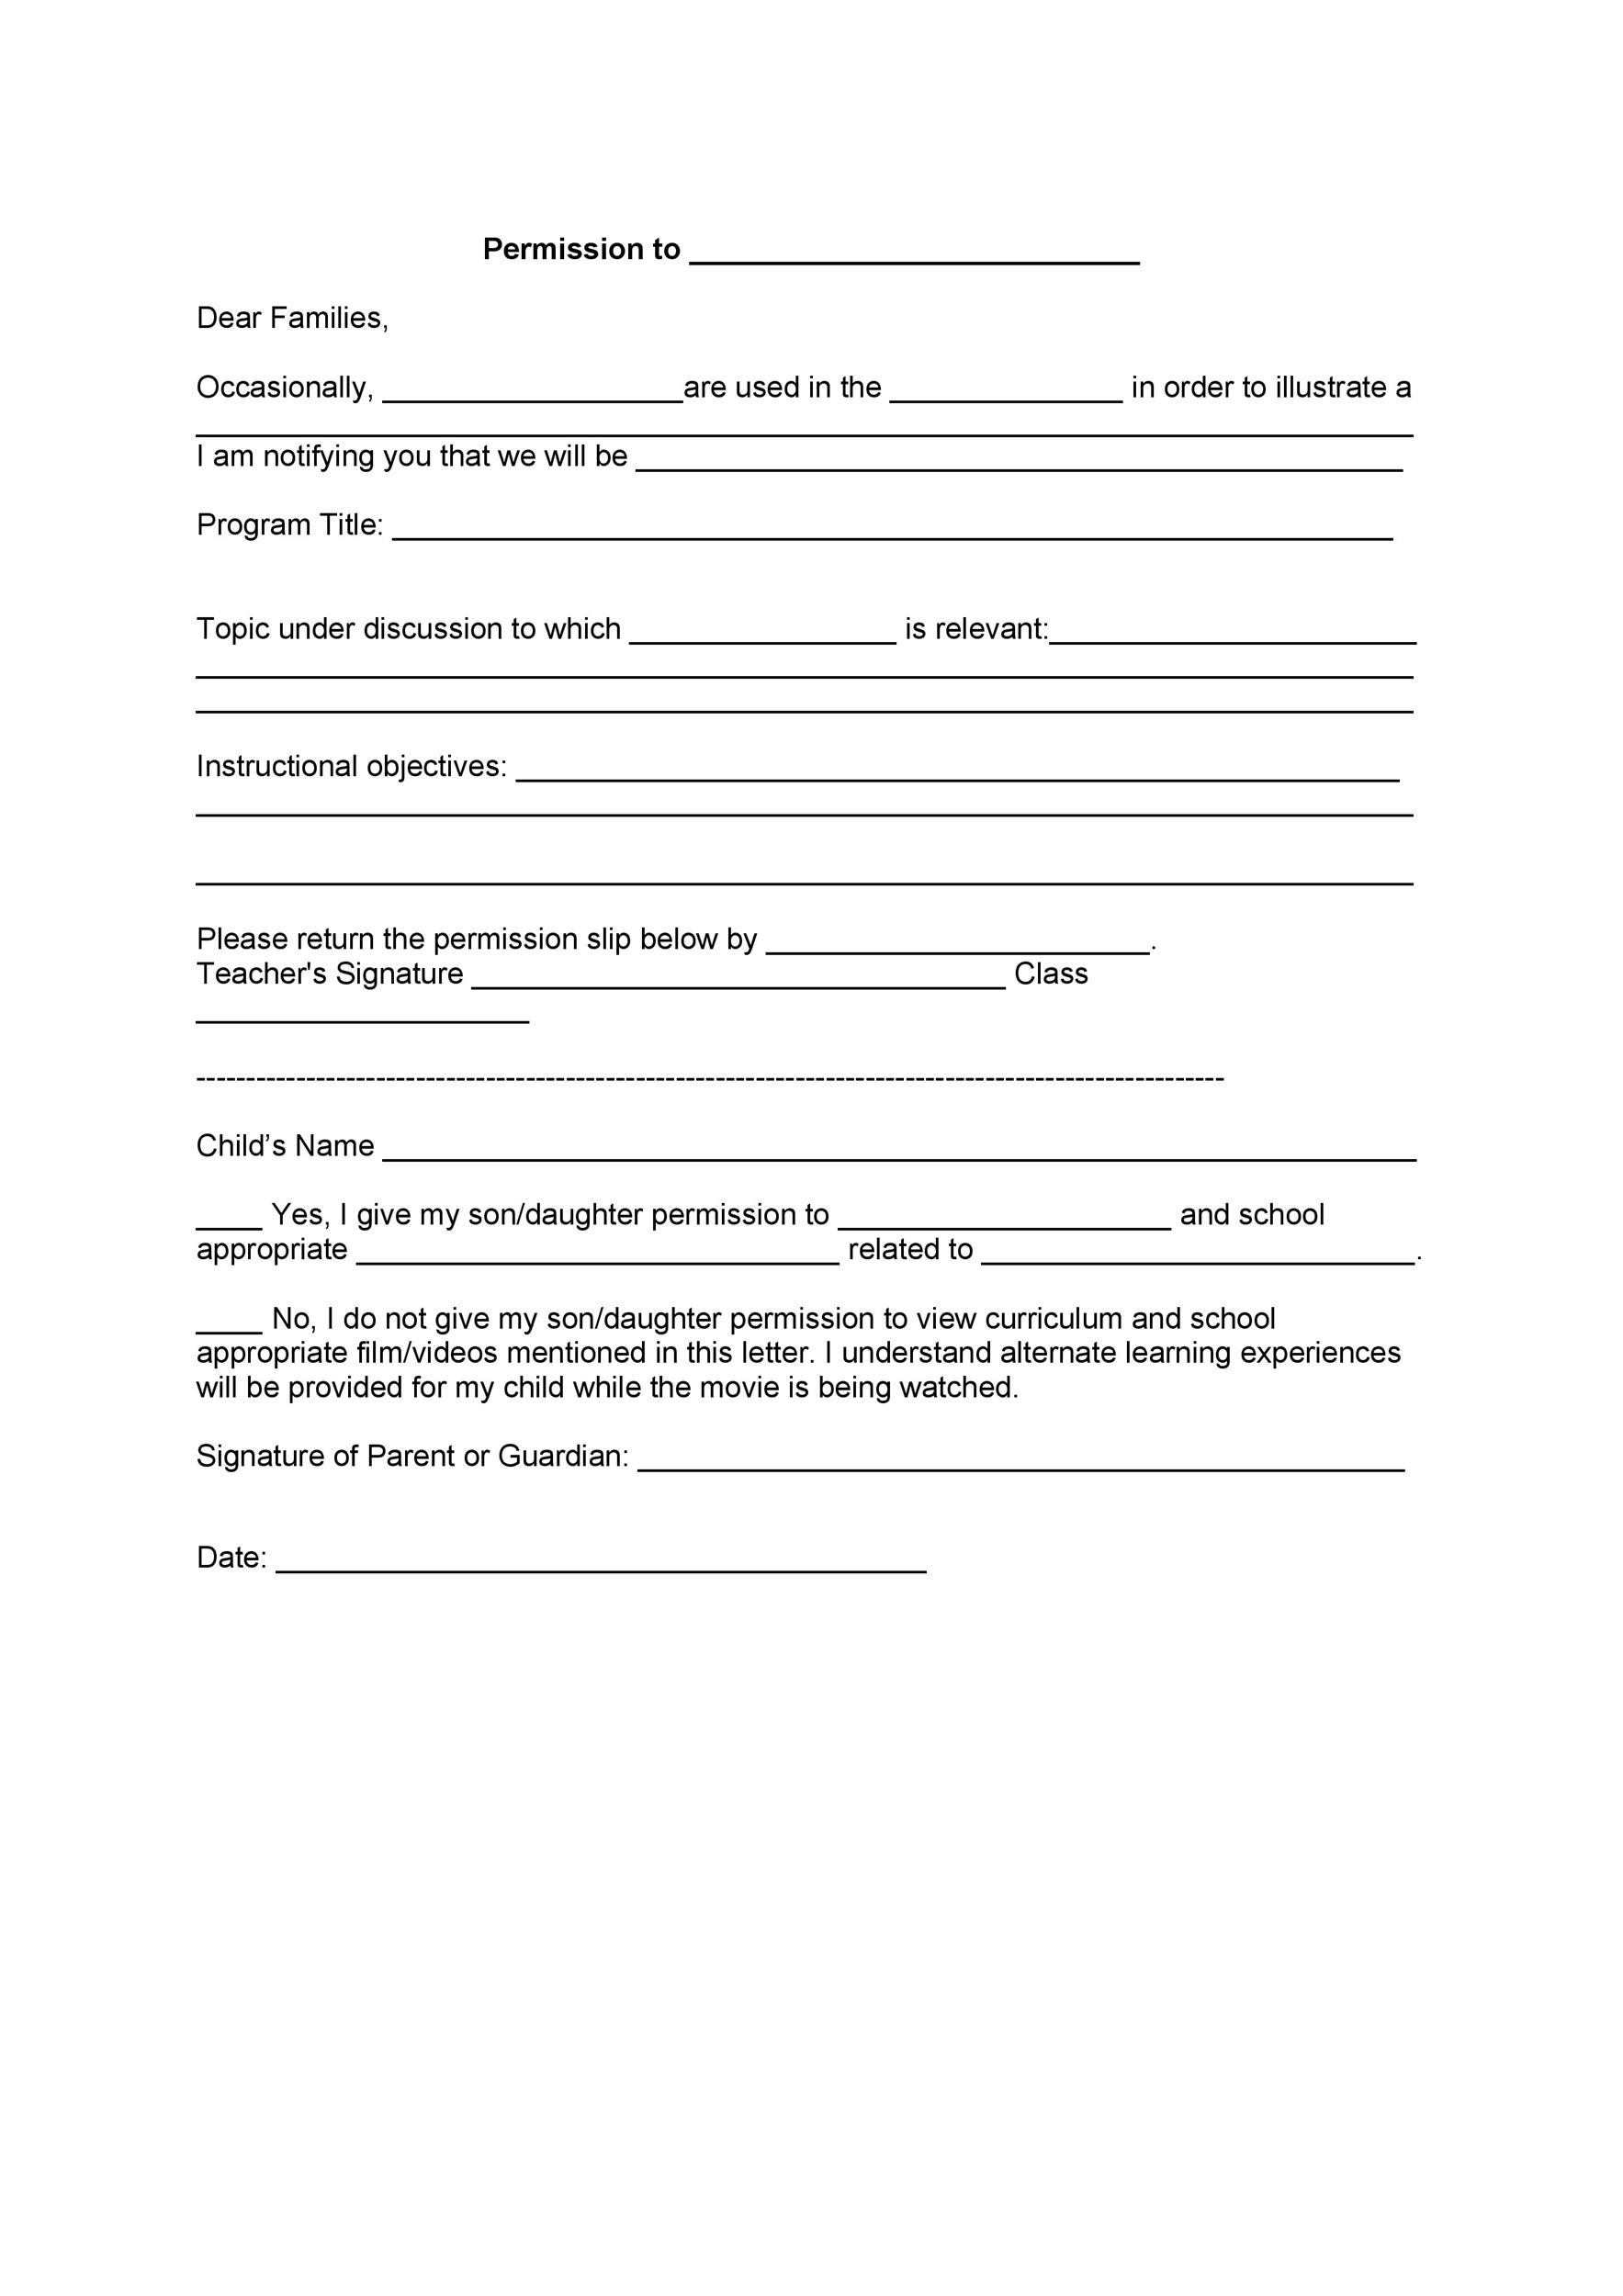 35 permission slip templates field trip forms printable permission slip 16 thecheapjerseys Choice Image